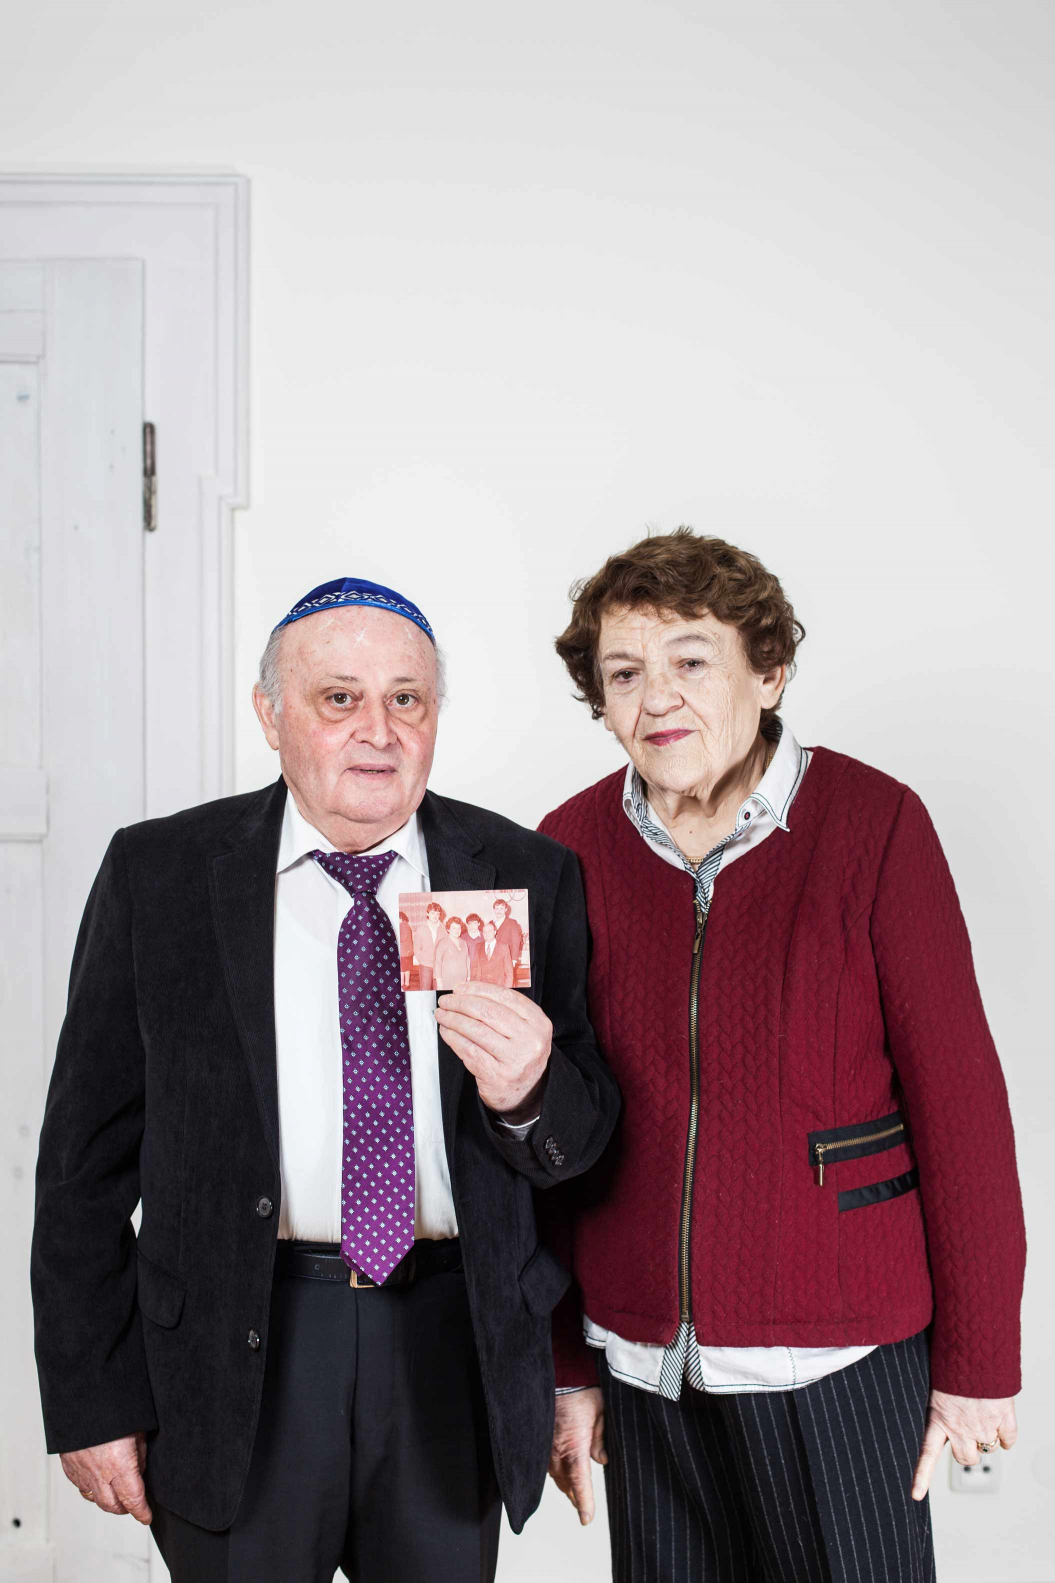 Older couple with a photograph in their hands